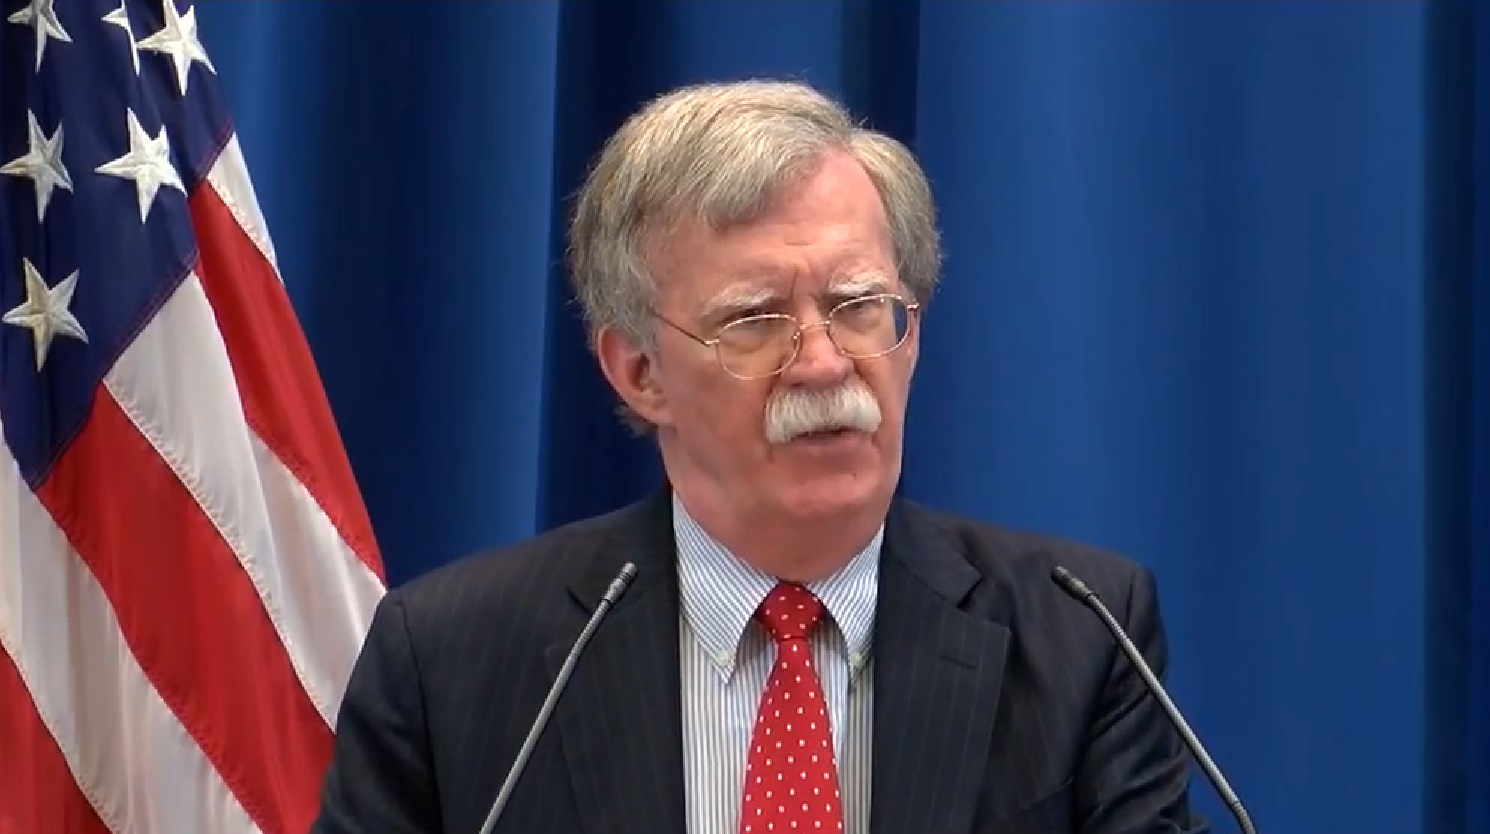 U.S. National Security Advisor Met With His Russian Counterpart In Geneva